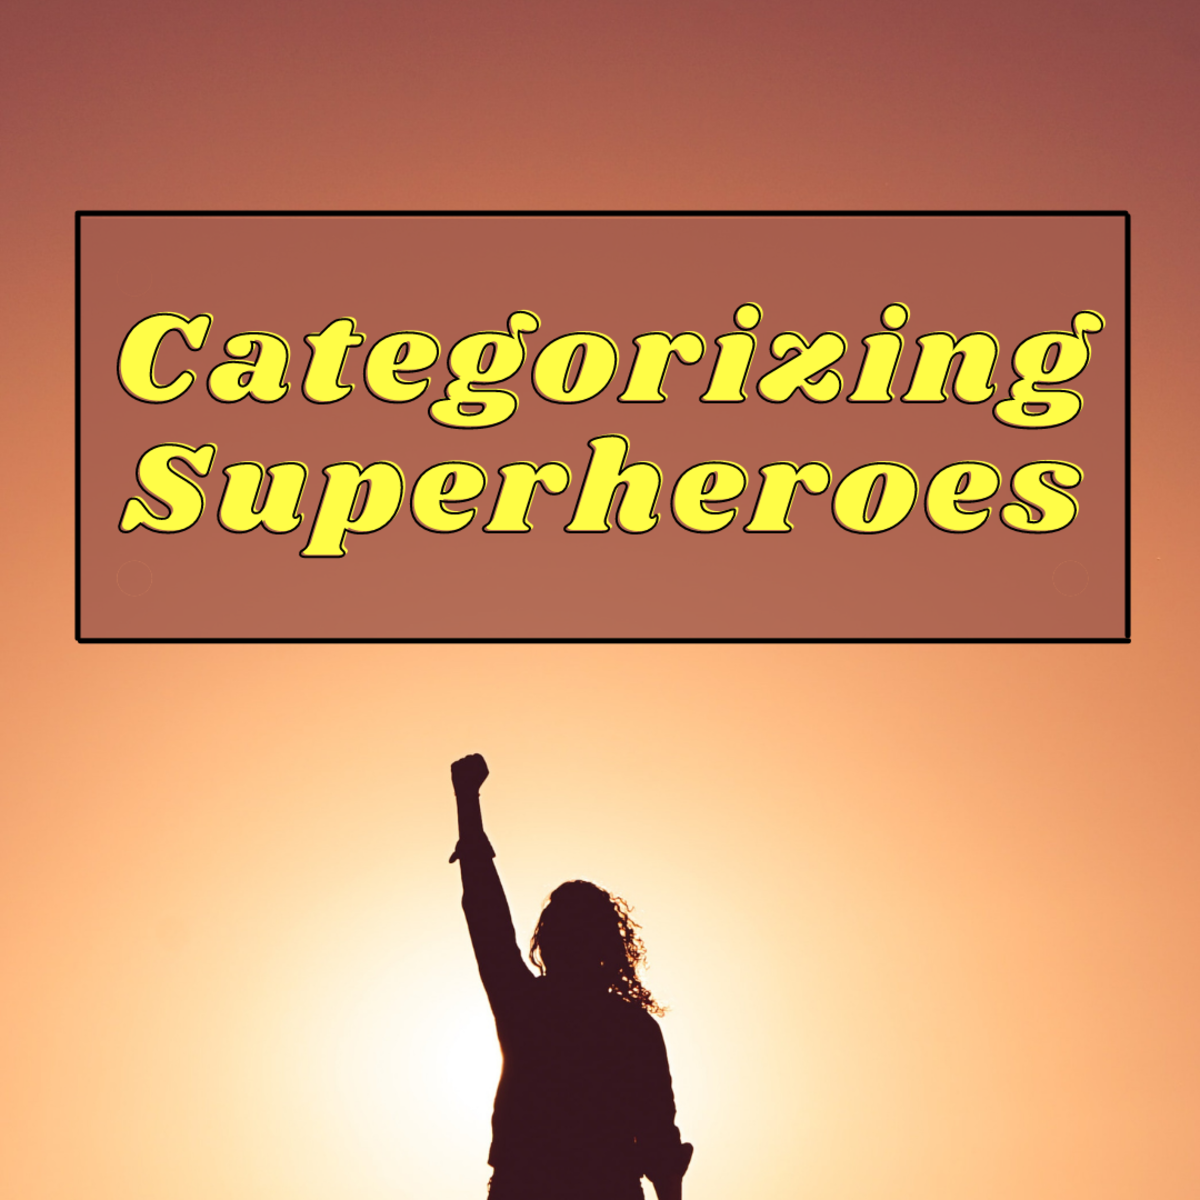 Learn the many different types of superheroes and how they can be categorized by superpowers.